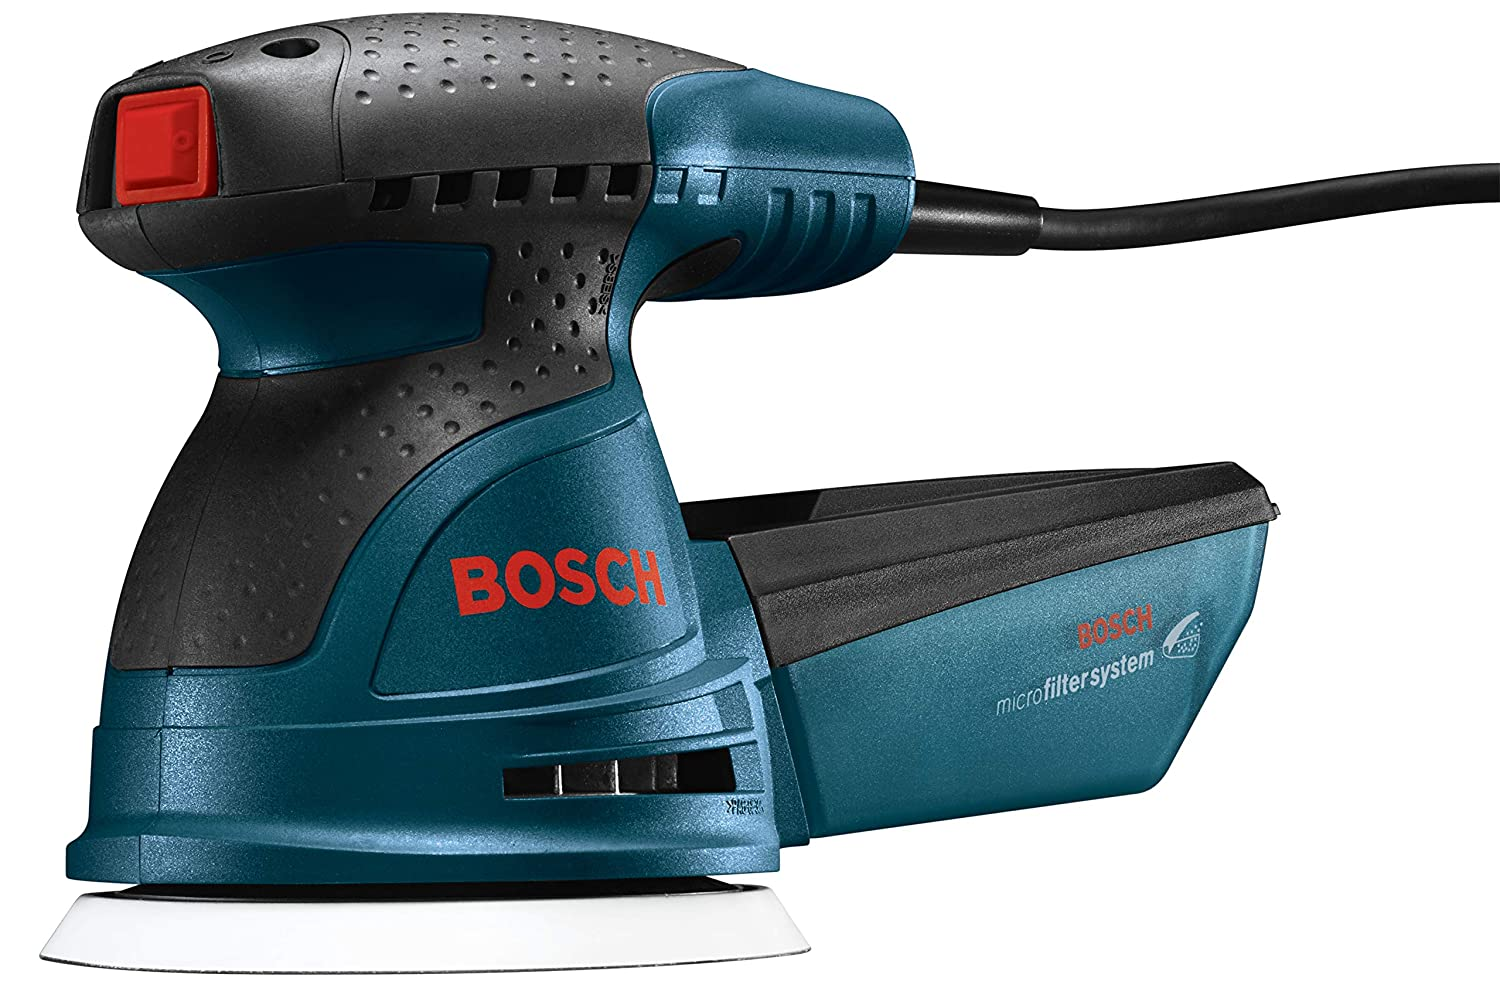 Bosch ROS20VSC featured image 1